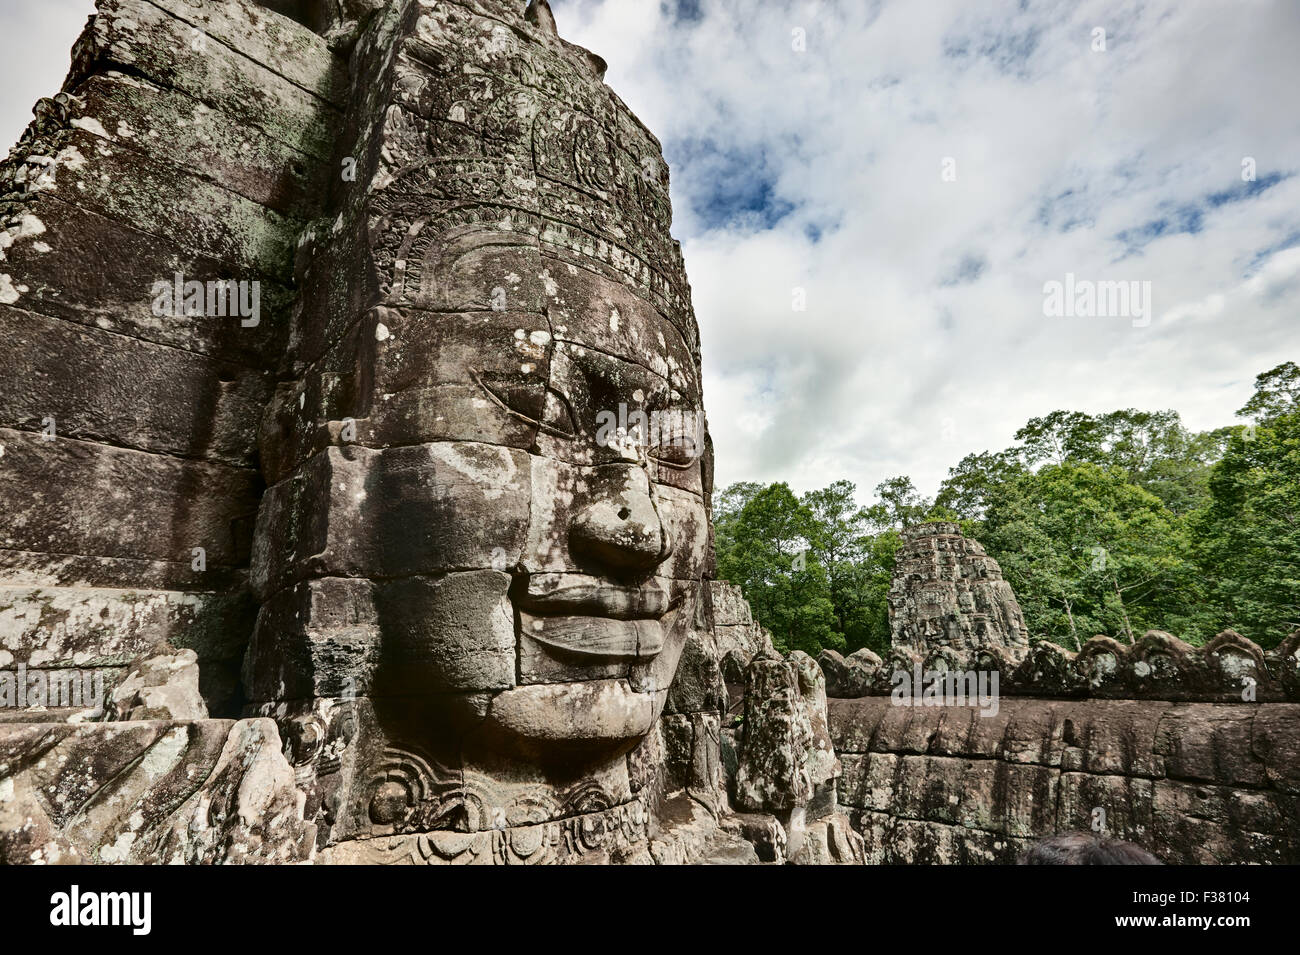 Carved stone giant face at Bayon temple in Angkor Thom. Angkor Archaeological Park, Siem Reap Province, Cambodia. Stock Photo